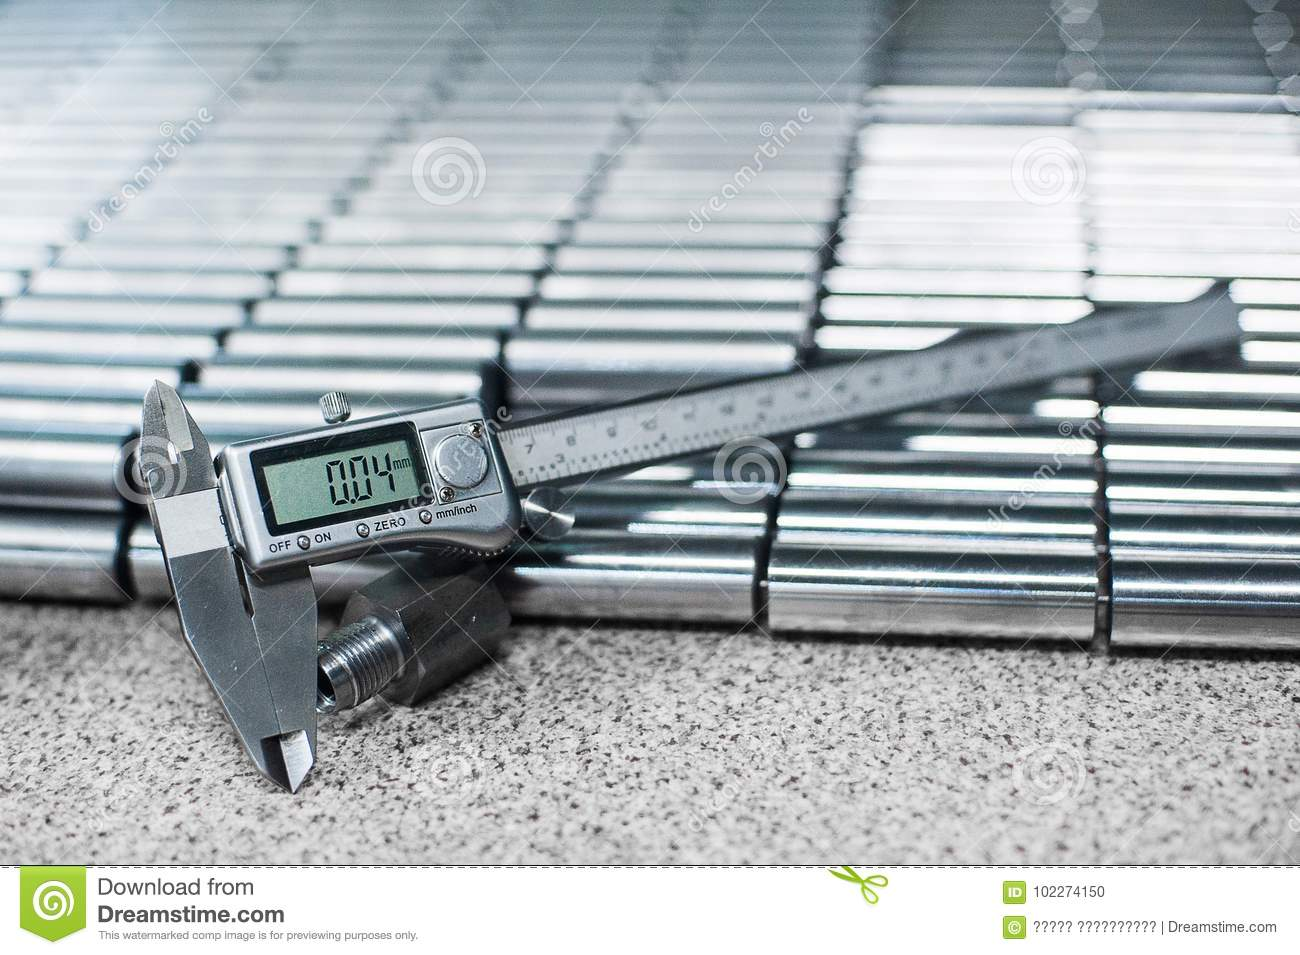 Electronic caliper in front of bearing rollers. Close up, depth of field, selective focus